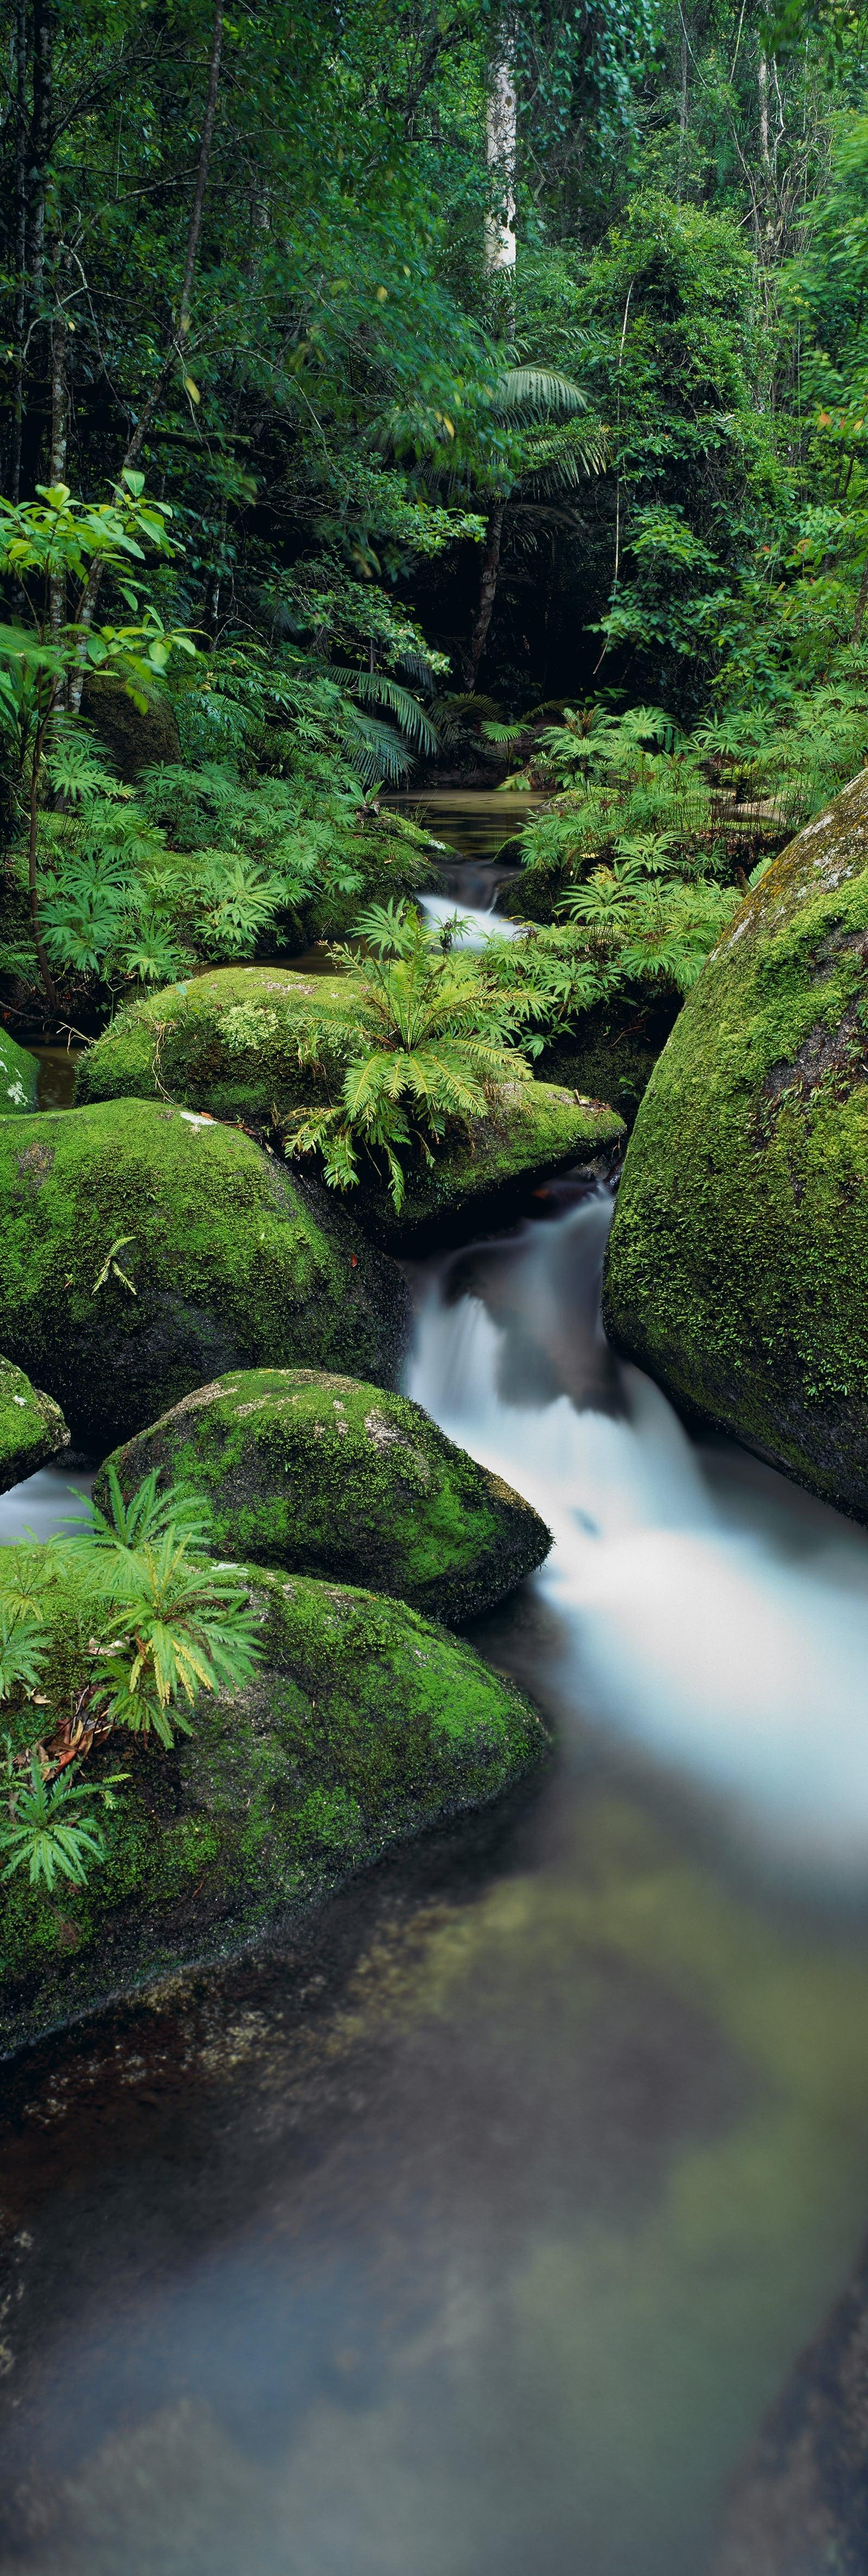 Creek running through mossy boulders in the rainforest of Daintree National Park Australia